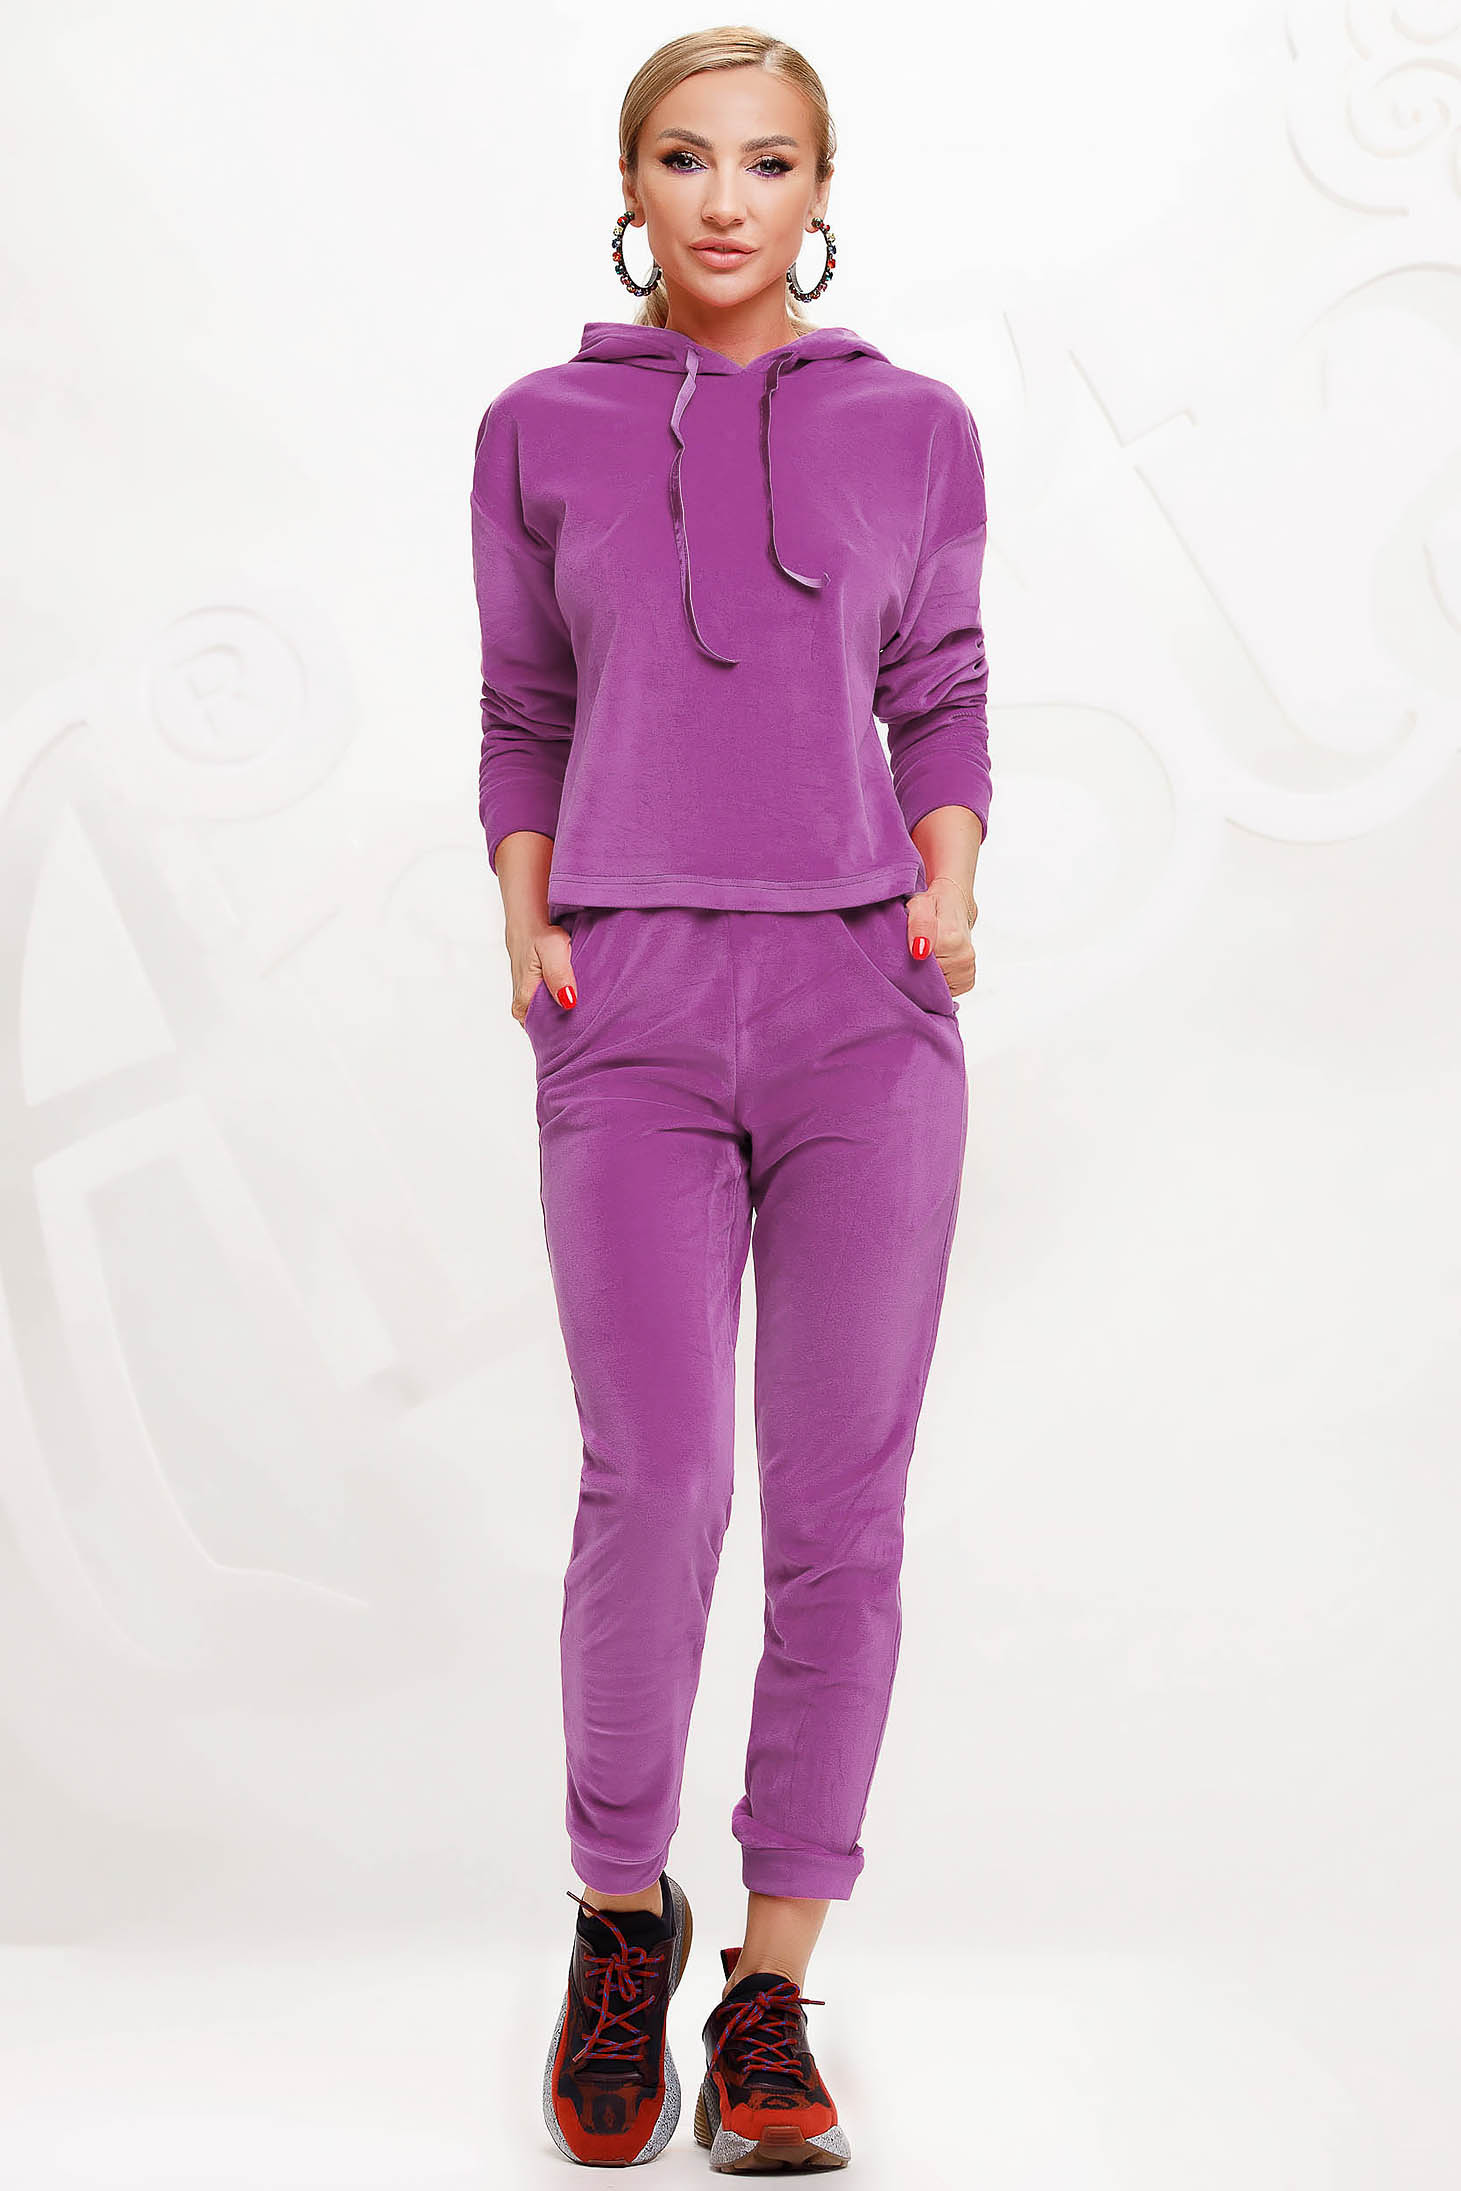 Lila sport 2 pieces 2 pieces loose fit with undetachable hood